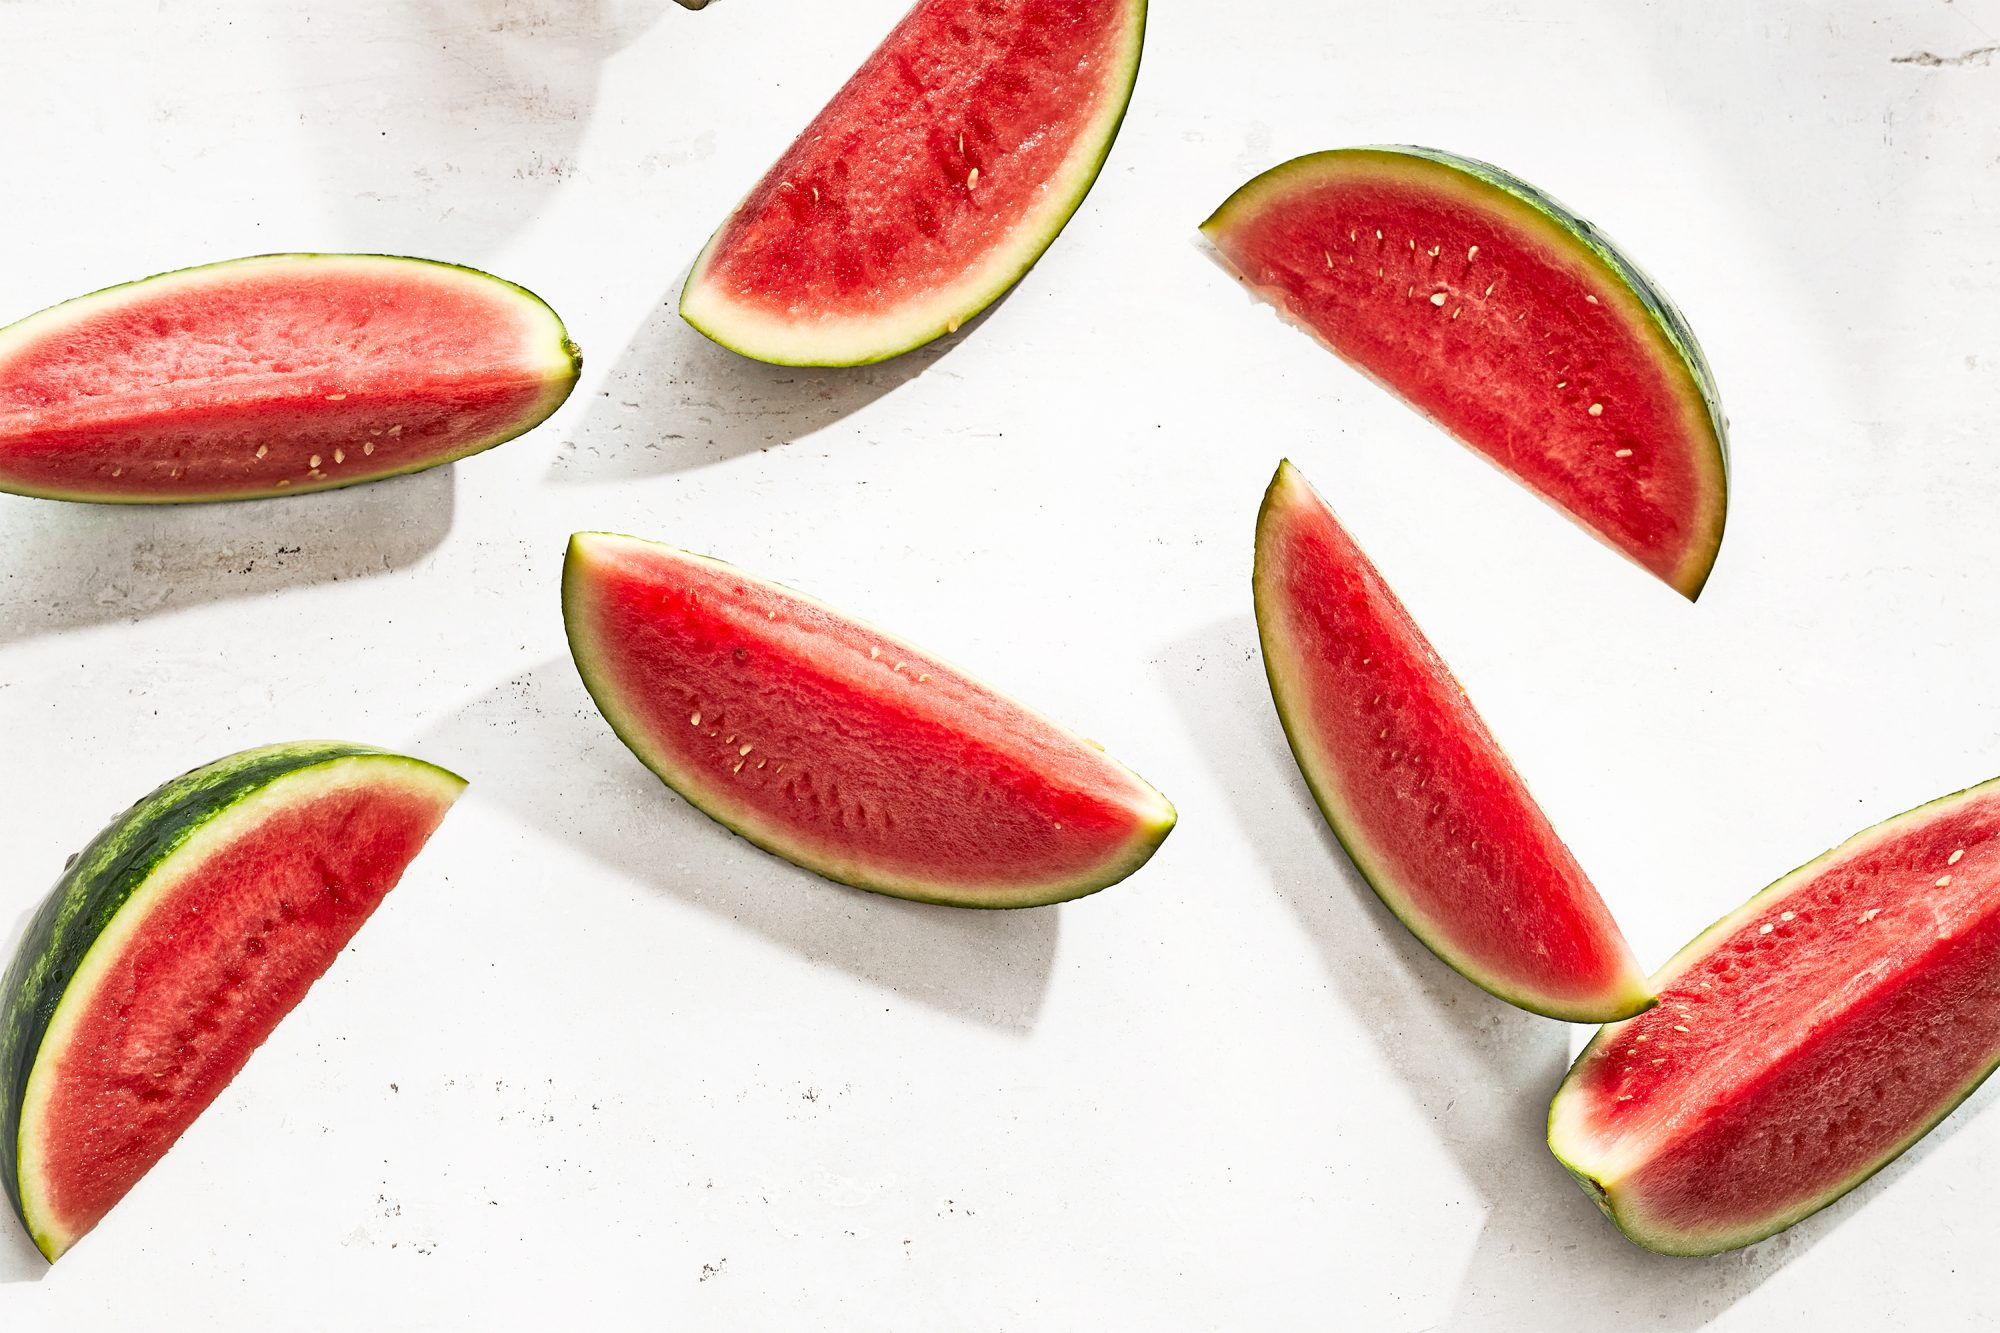 watermelon slices on a marble background